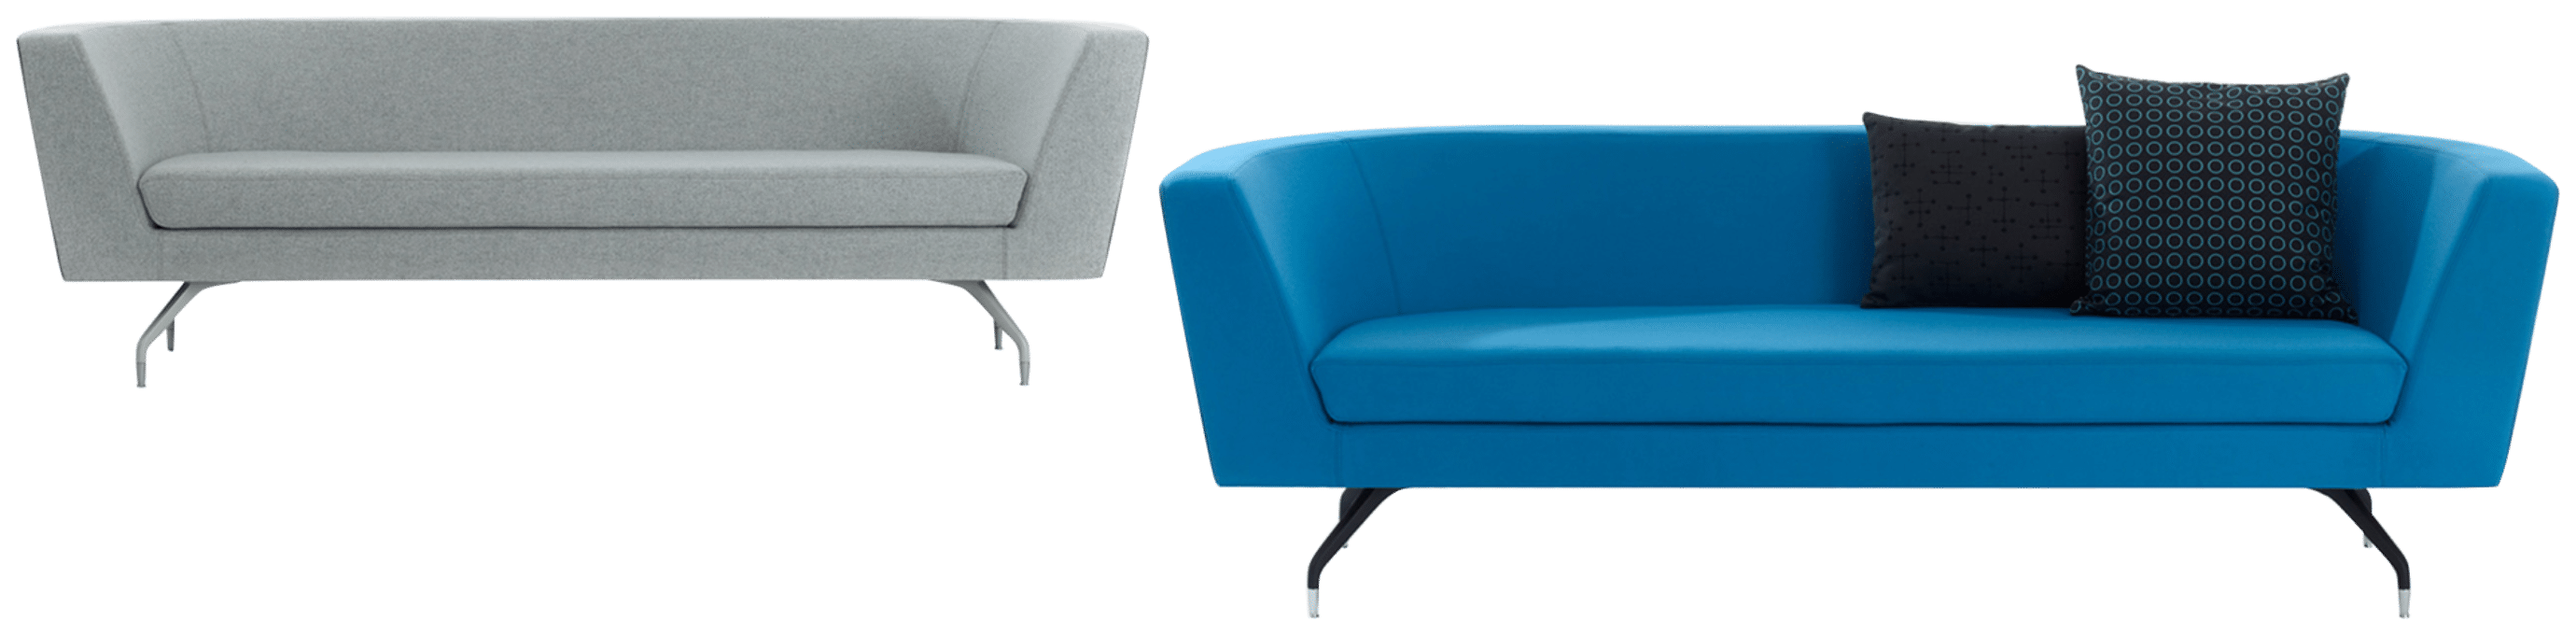 products cwtch low setting sofas